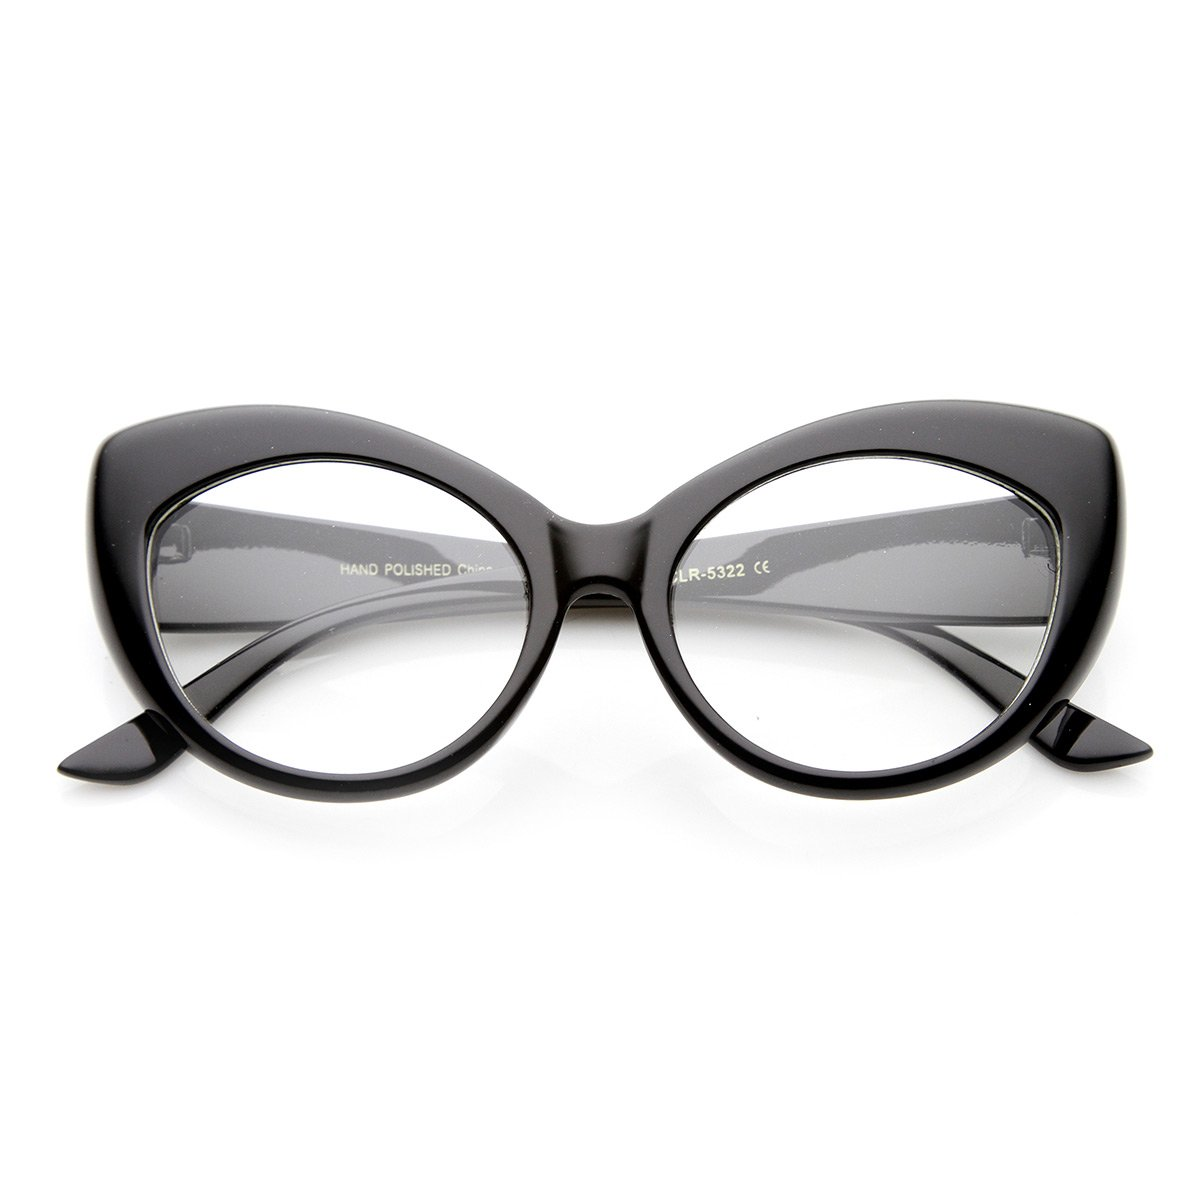 2c26c935e965e Amazon.com  Mod Pointed Cat Eye Clear Fashion Frame Glasses (Cheetah  Clear)  Clothing